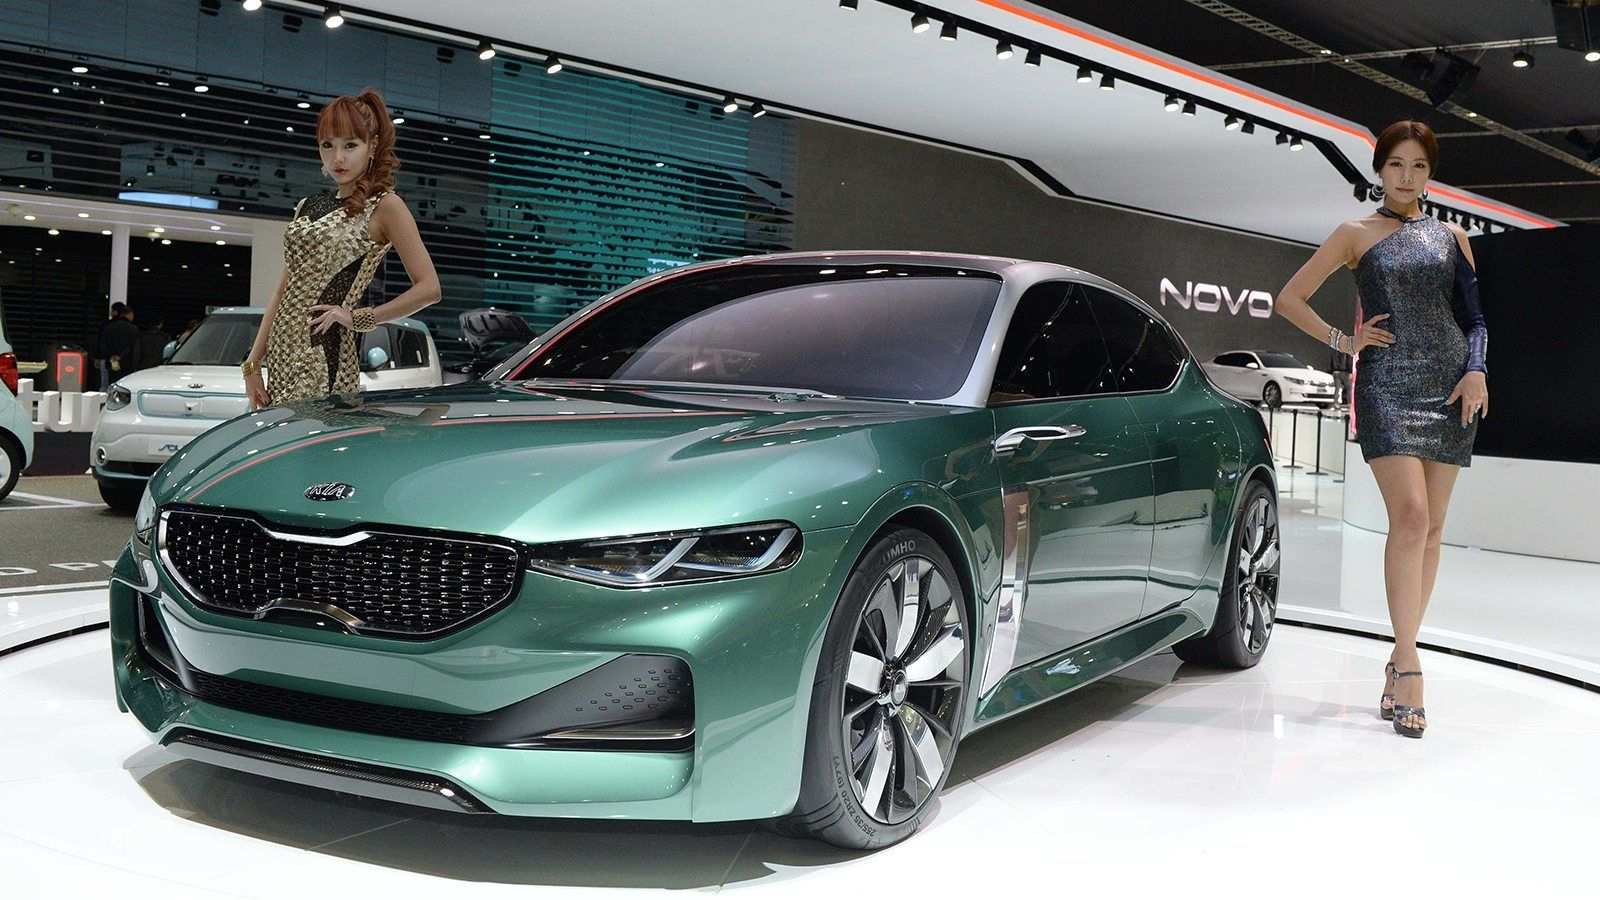 58 Concept of K900 Kia 2020 Reviews for K900 Kia 2020